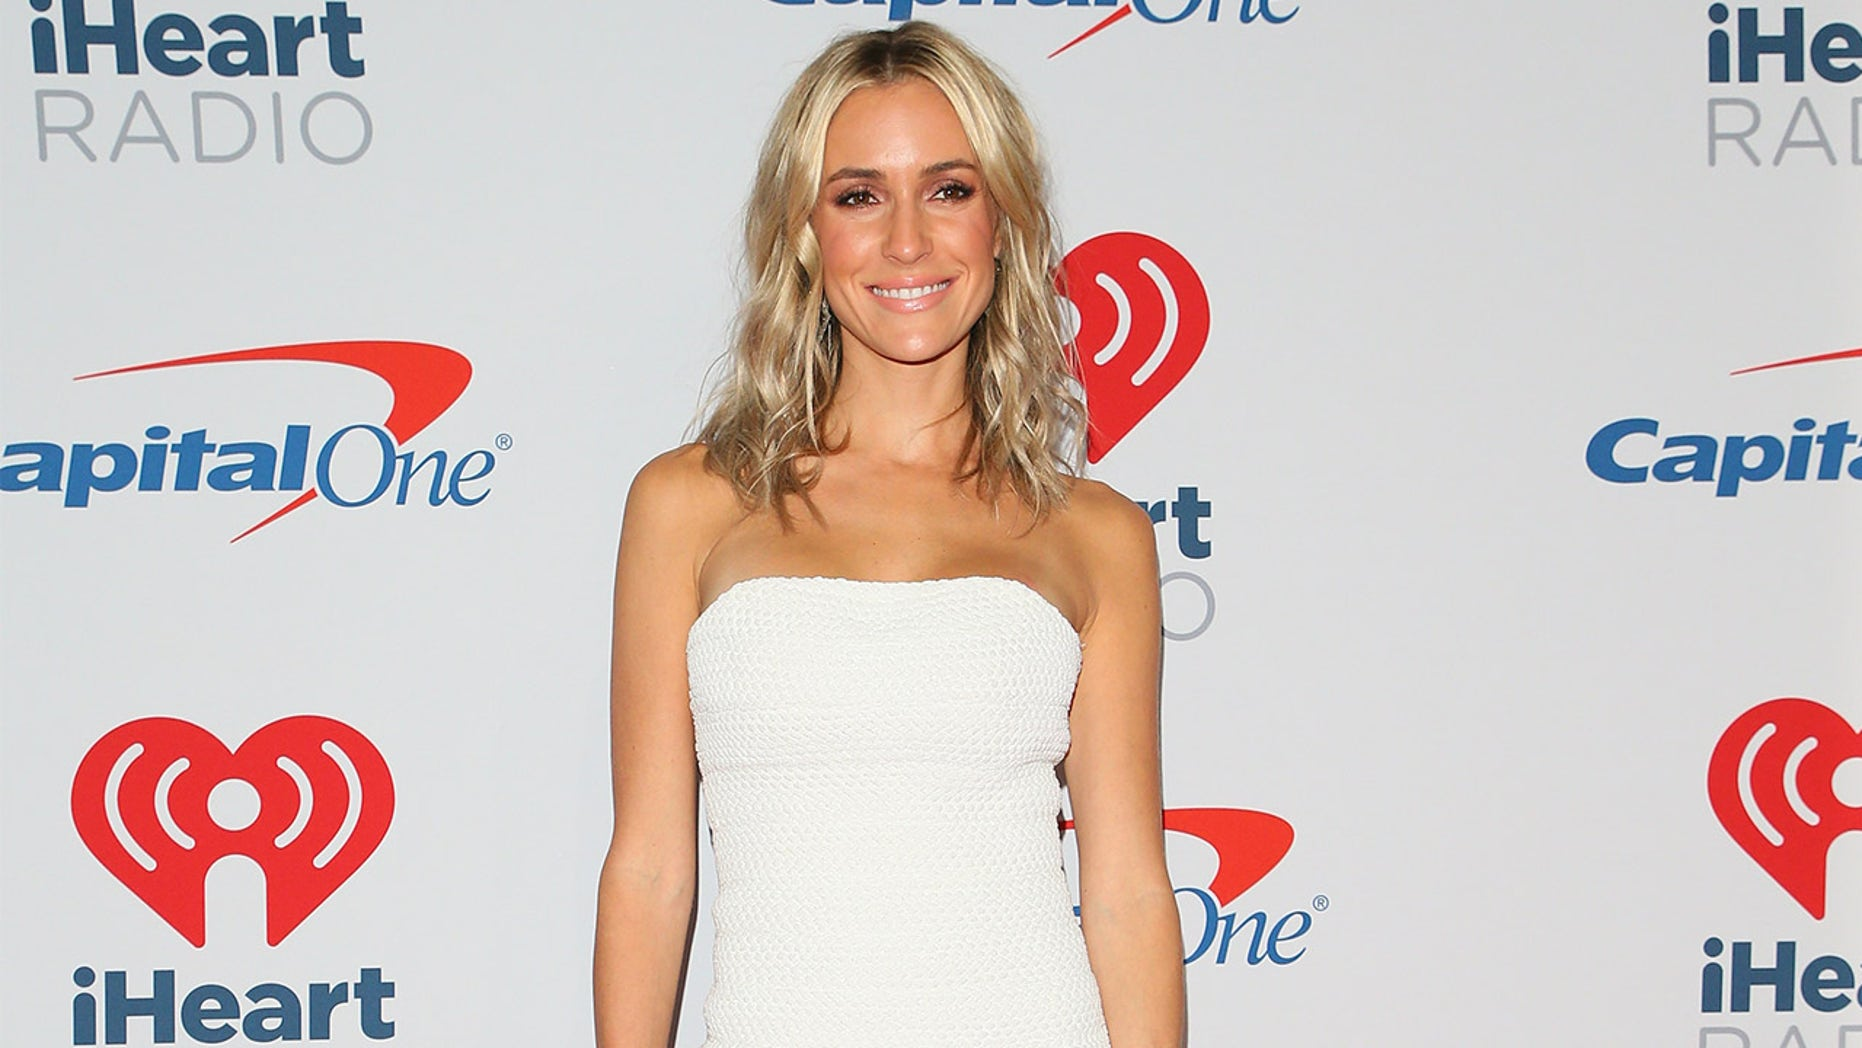 Kristin Cavallari talked to reporters at the iHeartRadio Music Festival in Las Vegas on Sept. 22.